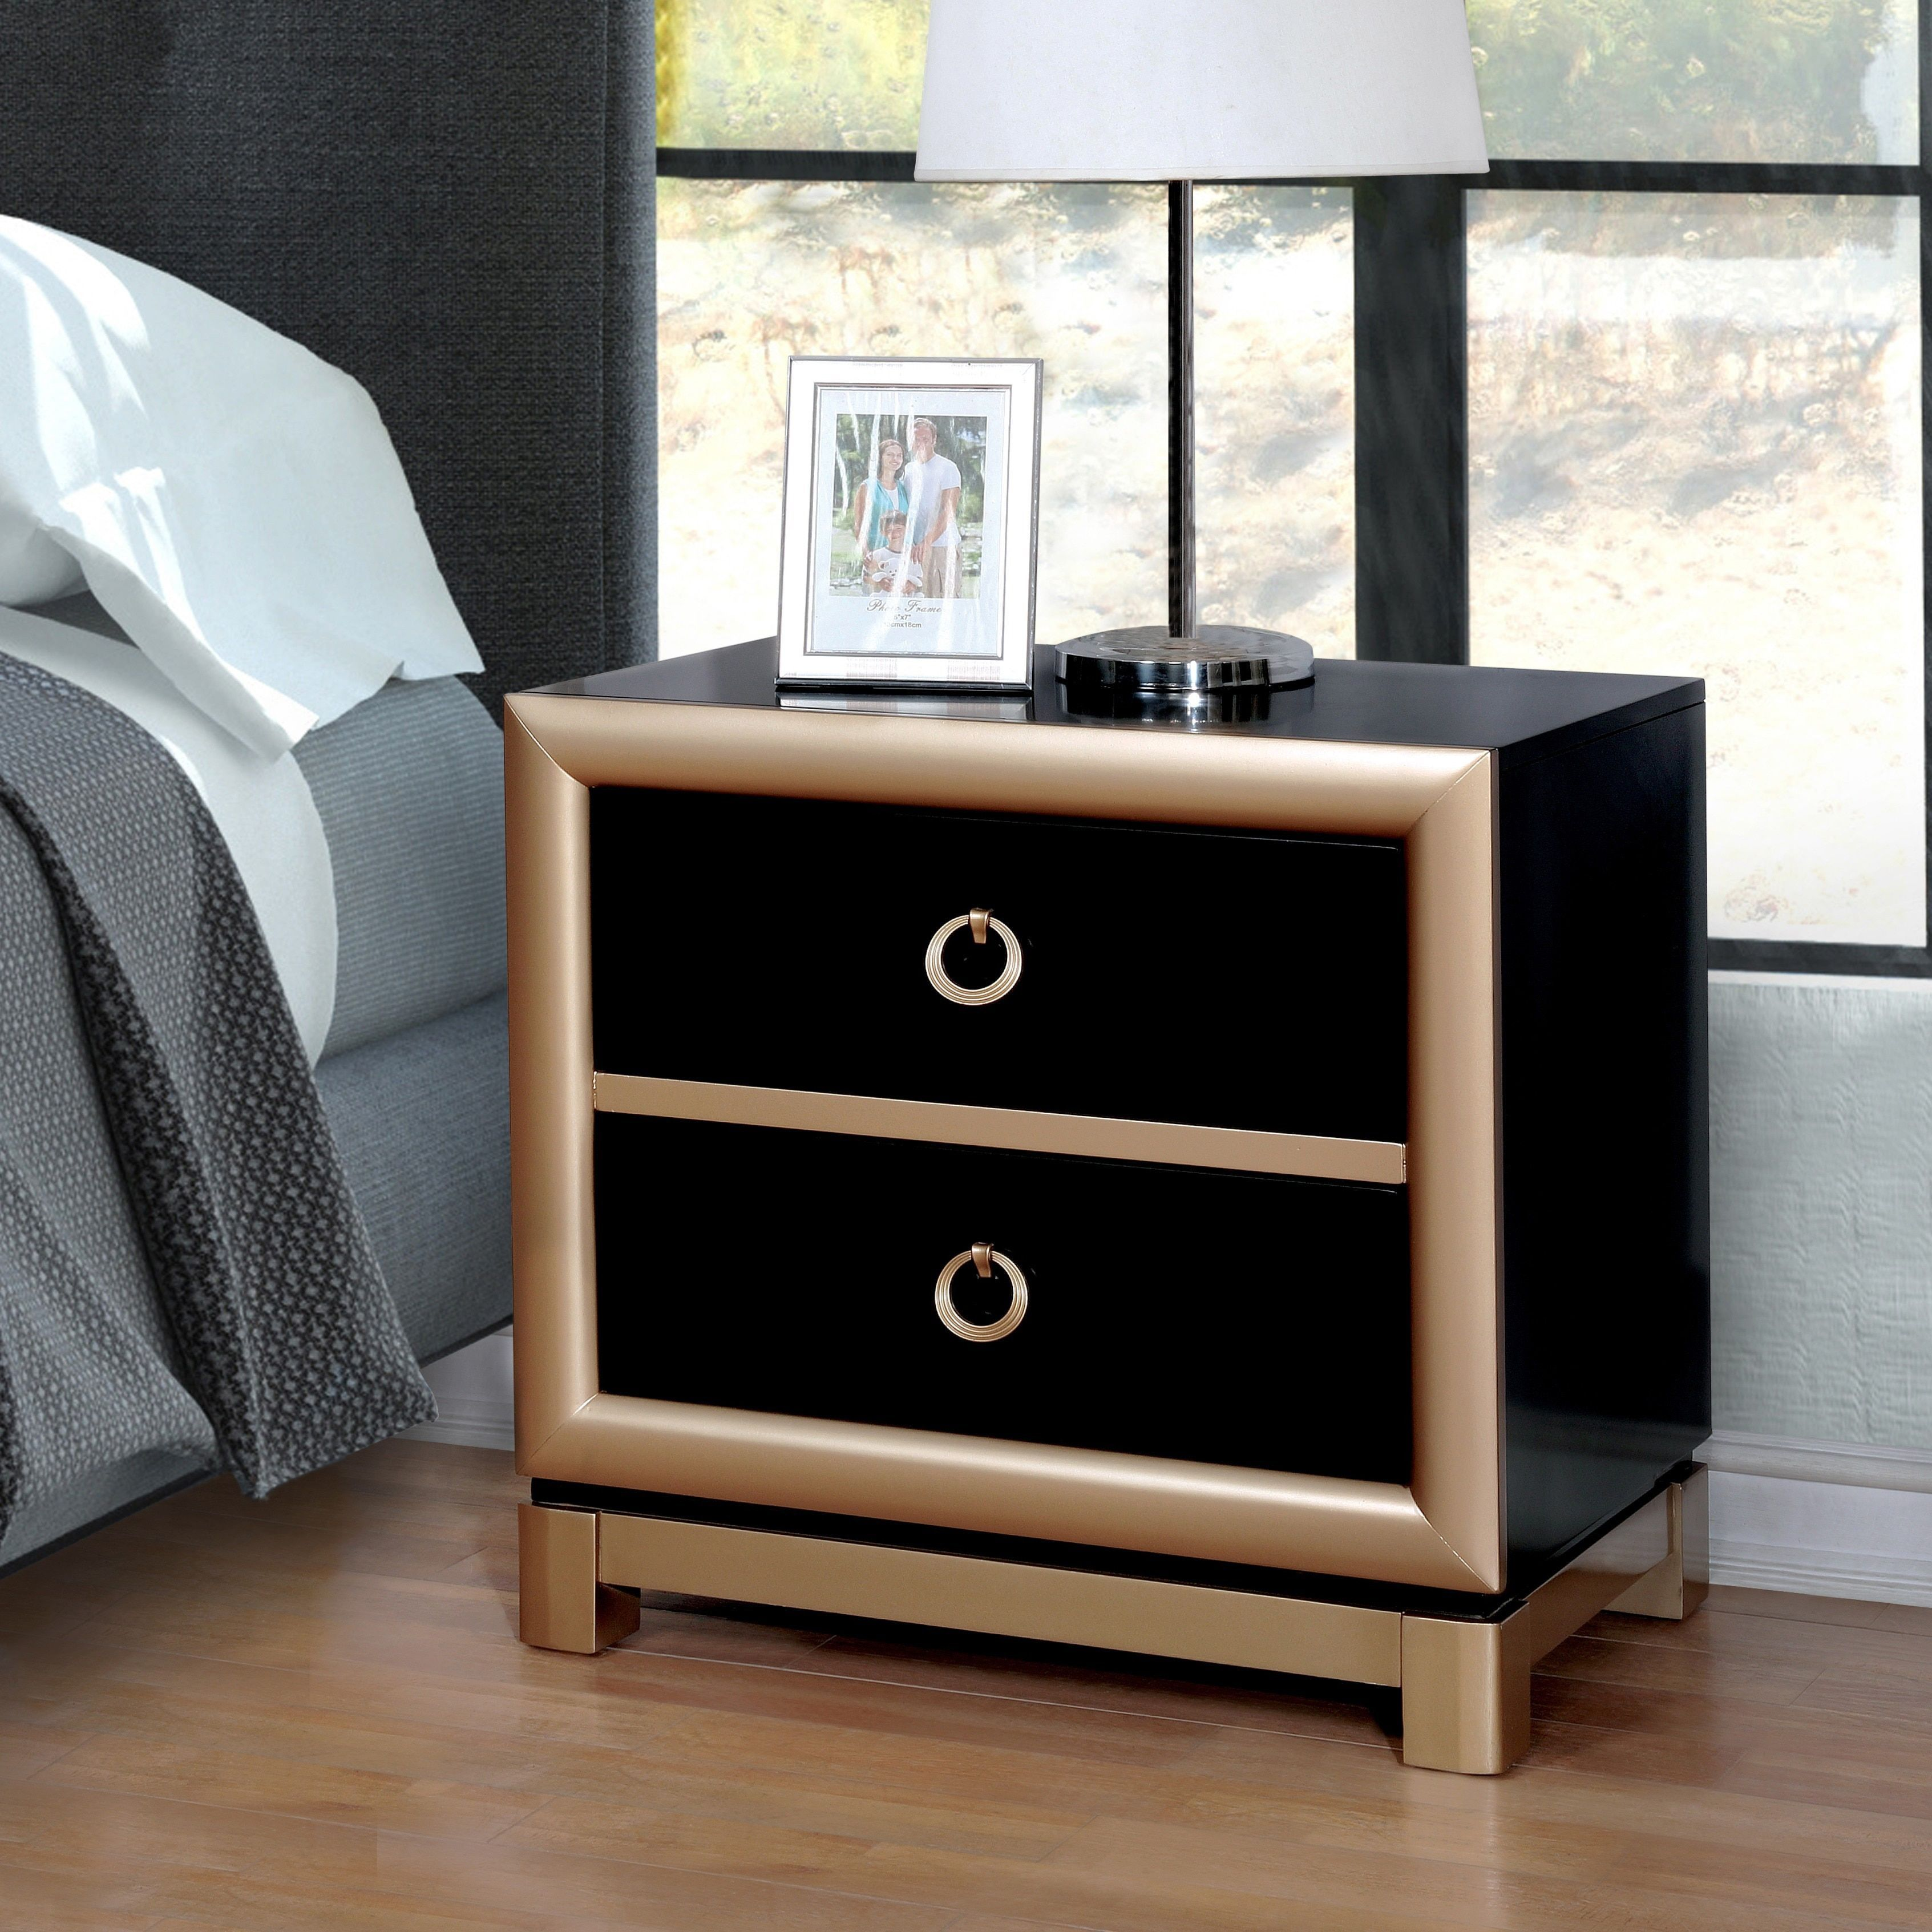 Black and gold furniture Bed Furniture Of America Lopex Contemporary Twotone Blackgold 3drawer Nightstand black Gold Size 2drawer veneer Pinterest Furniture Of America Lopex Contemporary Twotone Blackgold 3drawer